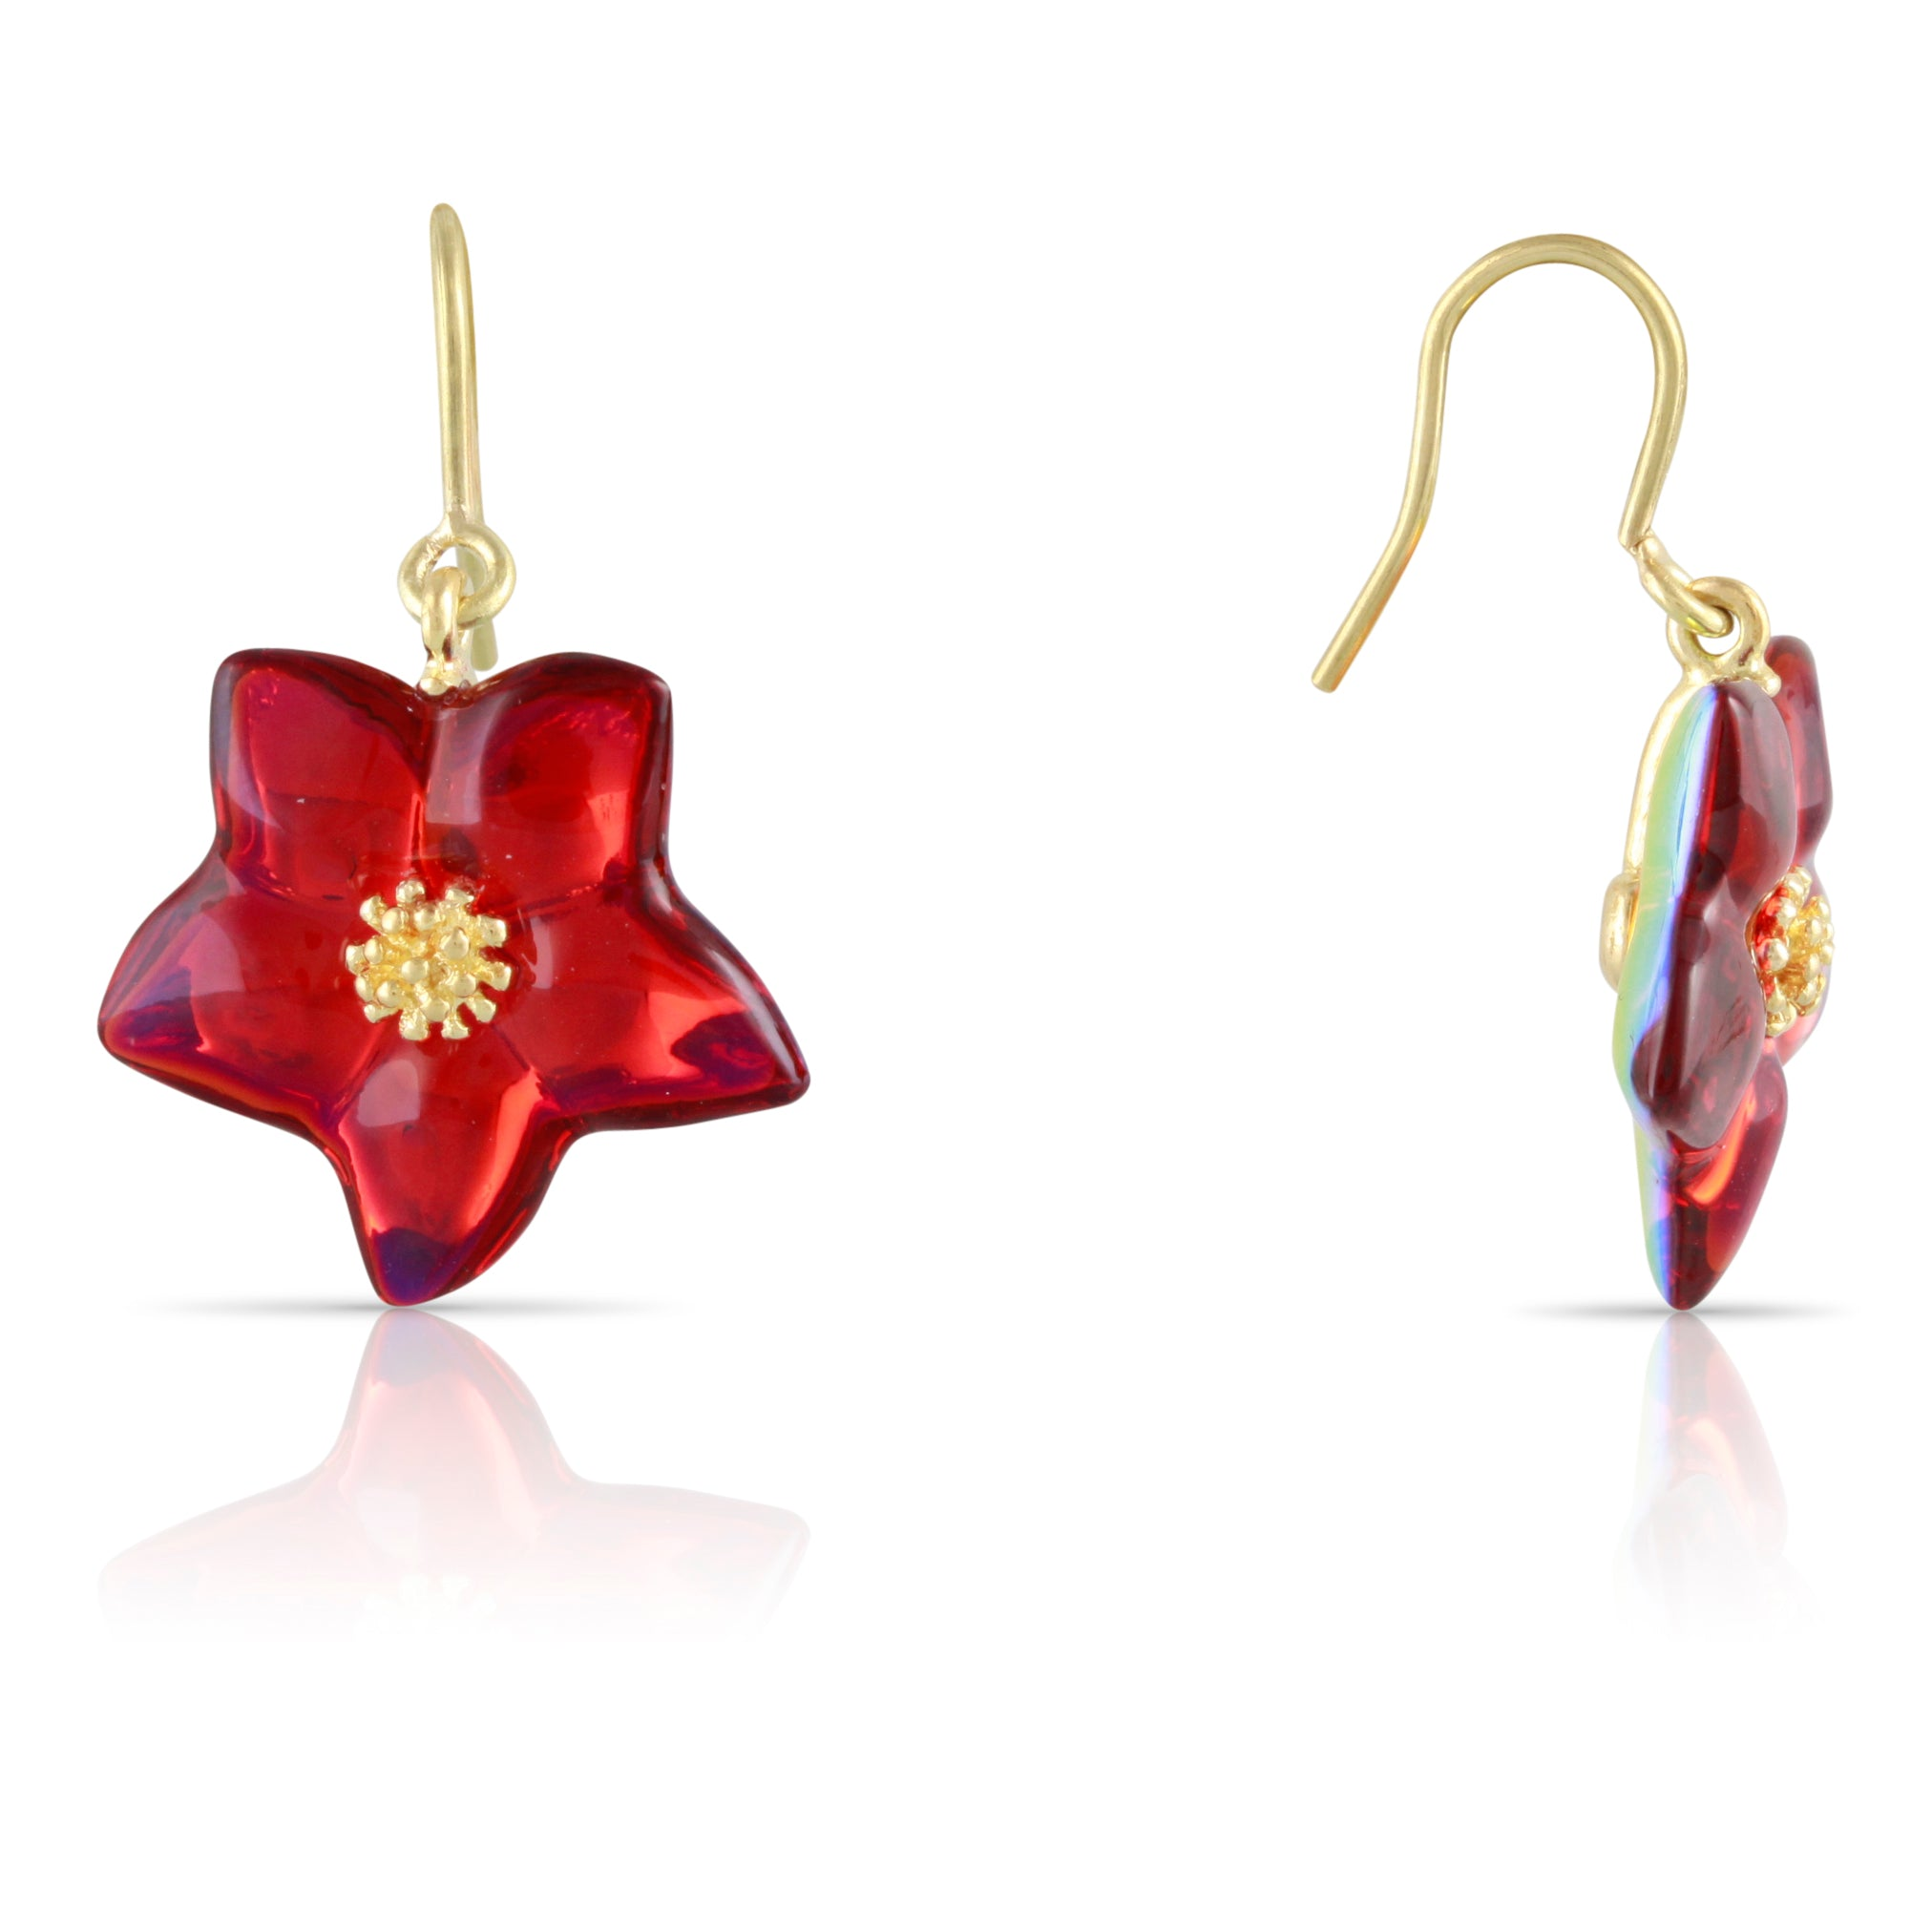 Baccarat Crystal Flower Drop Earrings | The Ballia